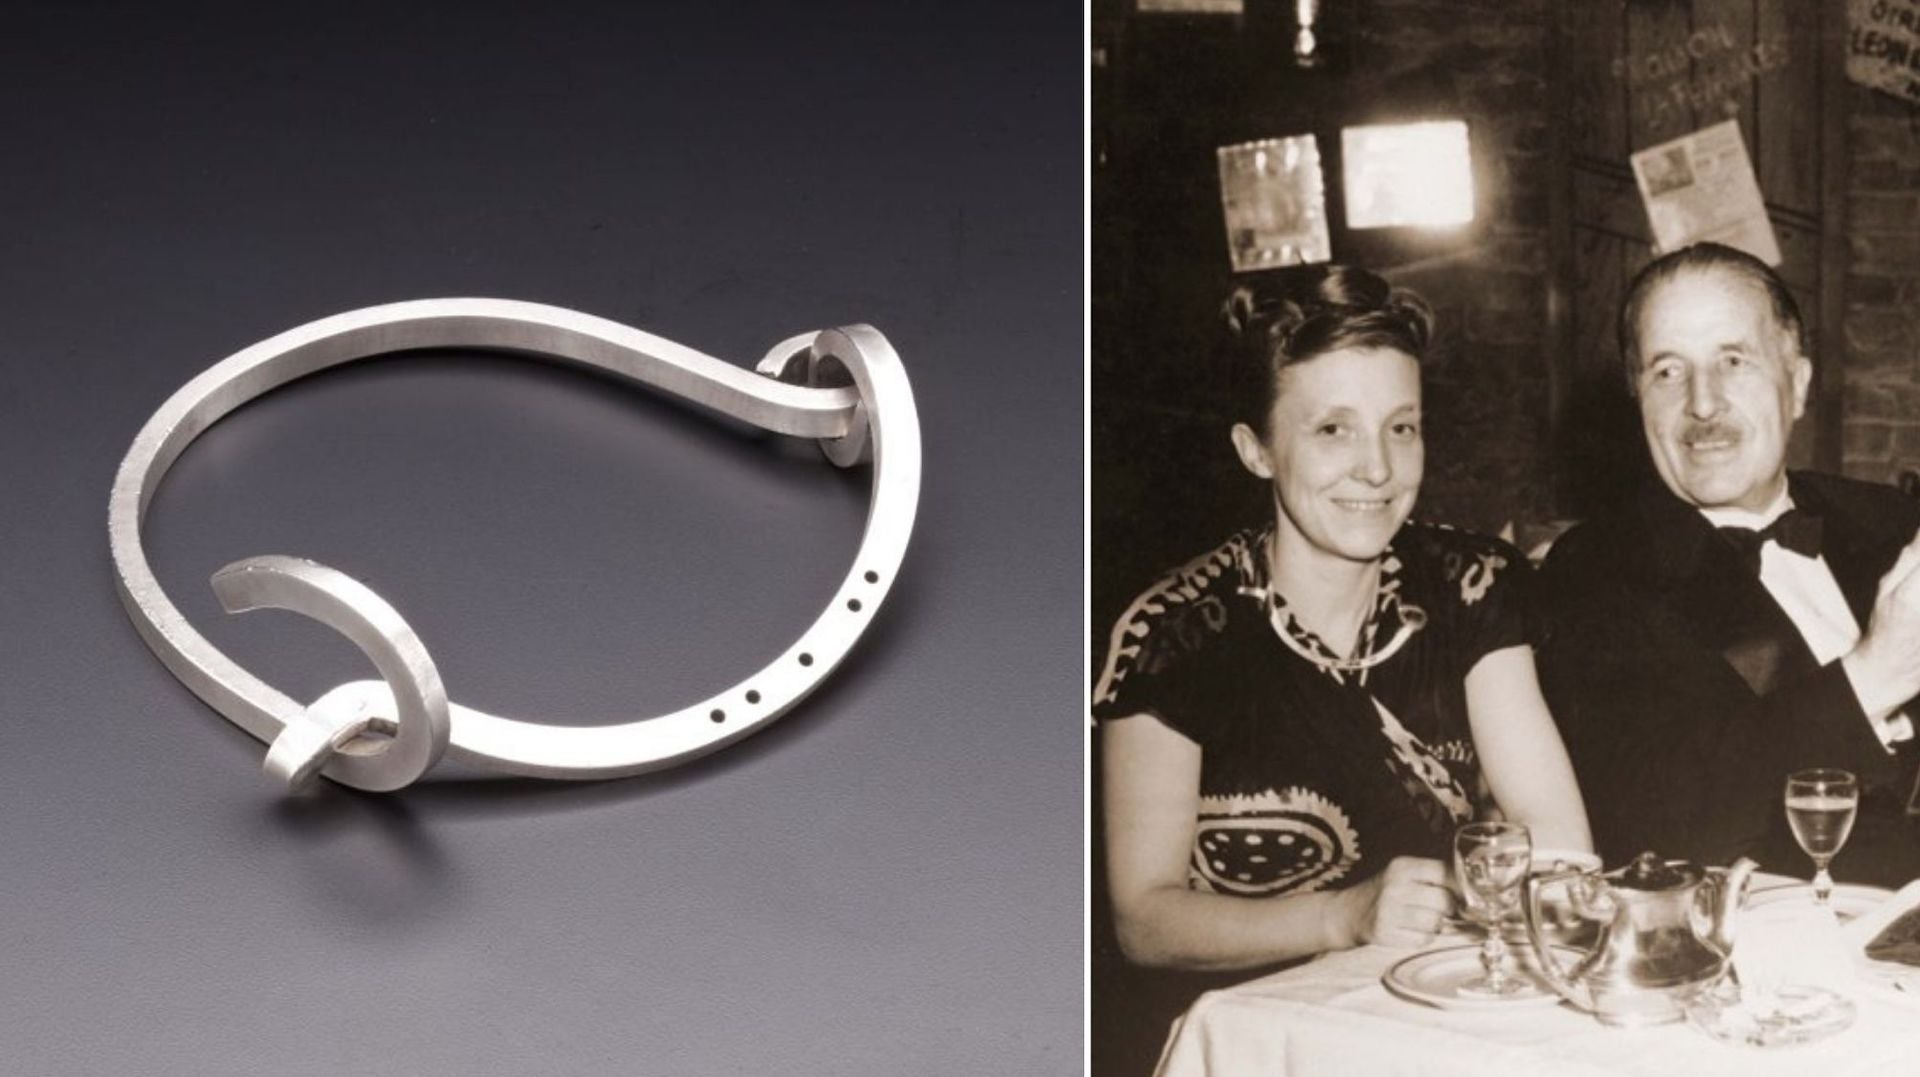 Shackle Necklace by Louise Bourgeois, c. 1948/1999. Louise Bourgeois wearing the shackle necklace at lunch with her father, 1948. Photos courtesy of Didier Ltd.